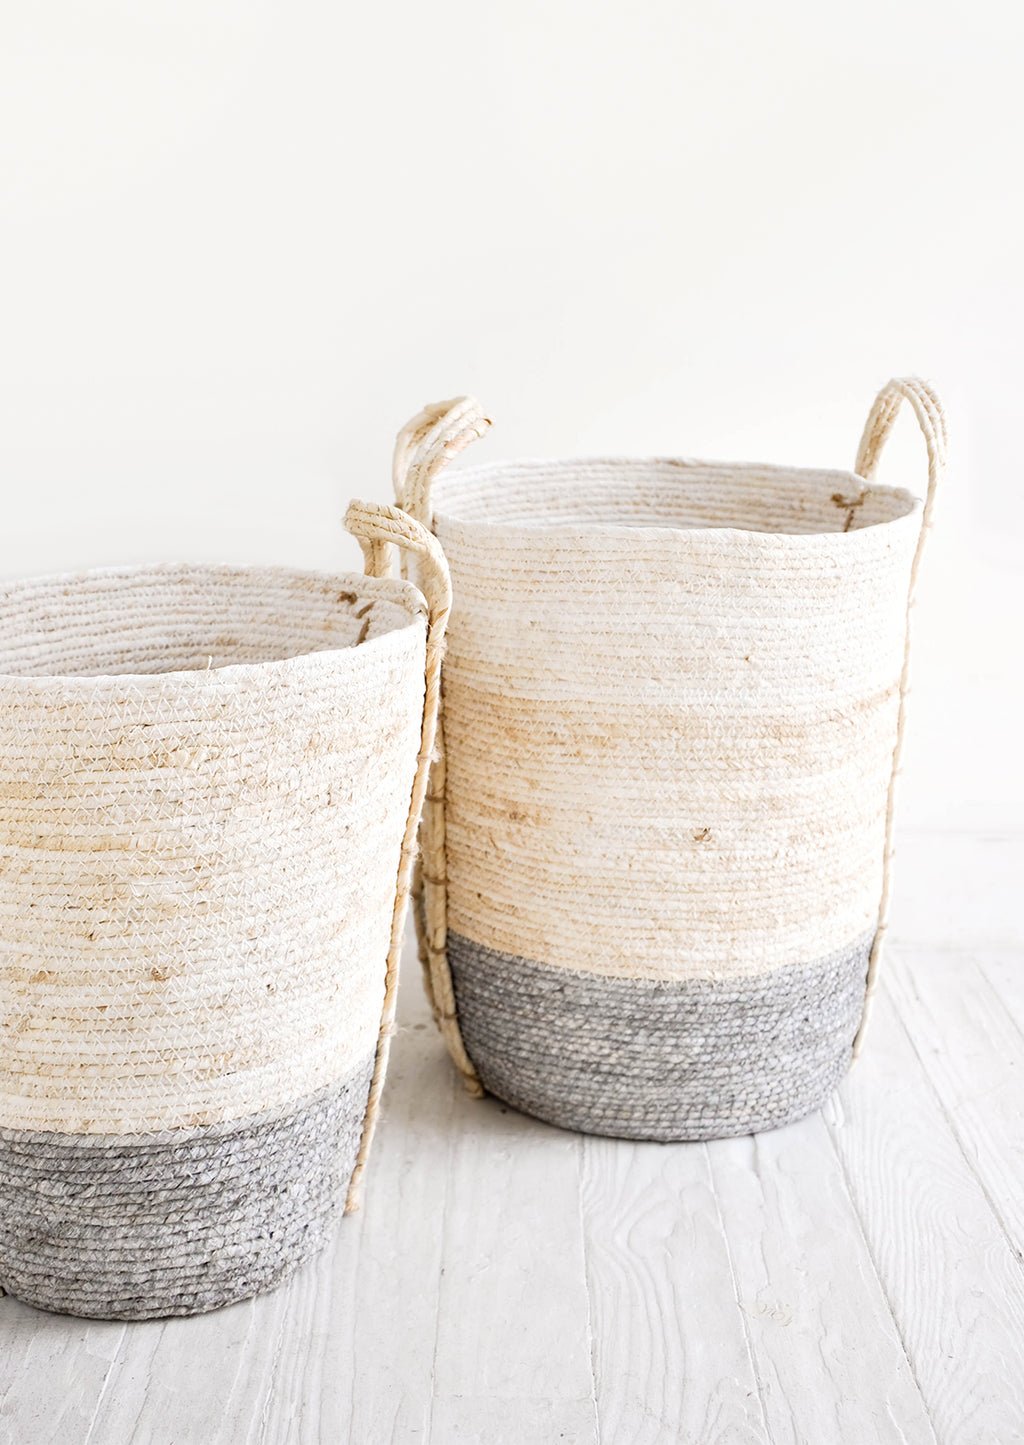 Slate / Tall [Small]: Tall, round storage baskets made from natural maize fiber, fiber handles attached at sides, band of contrasting grey color along bottom.